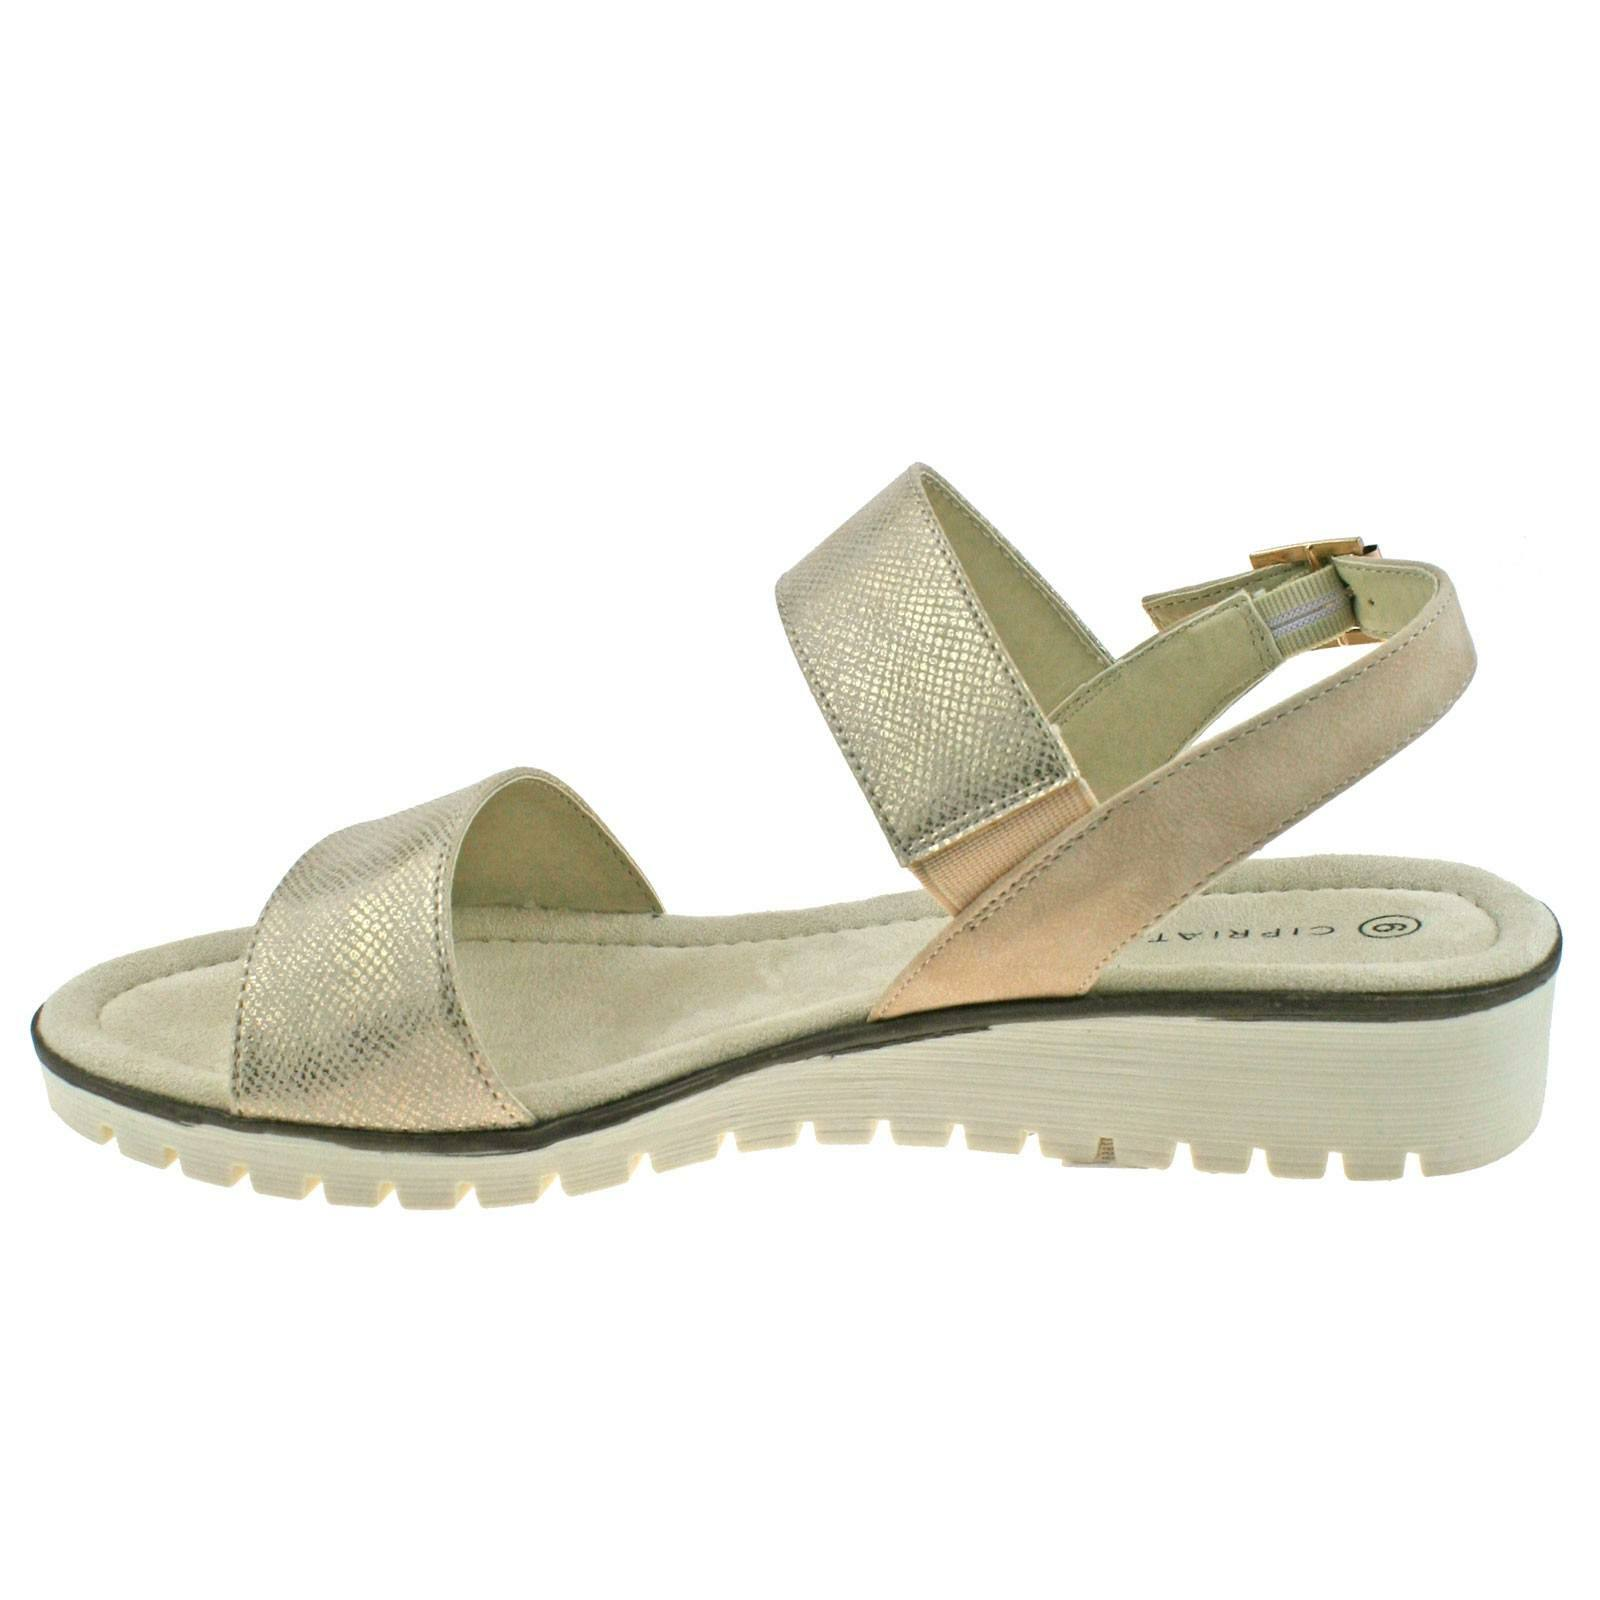 353eea3a73 LADIES CIPRIATA GOLD OR SILVER SHIMMER BUCKLE LOW WEDGE HEELED SANDALS L236  KD